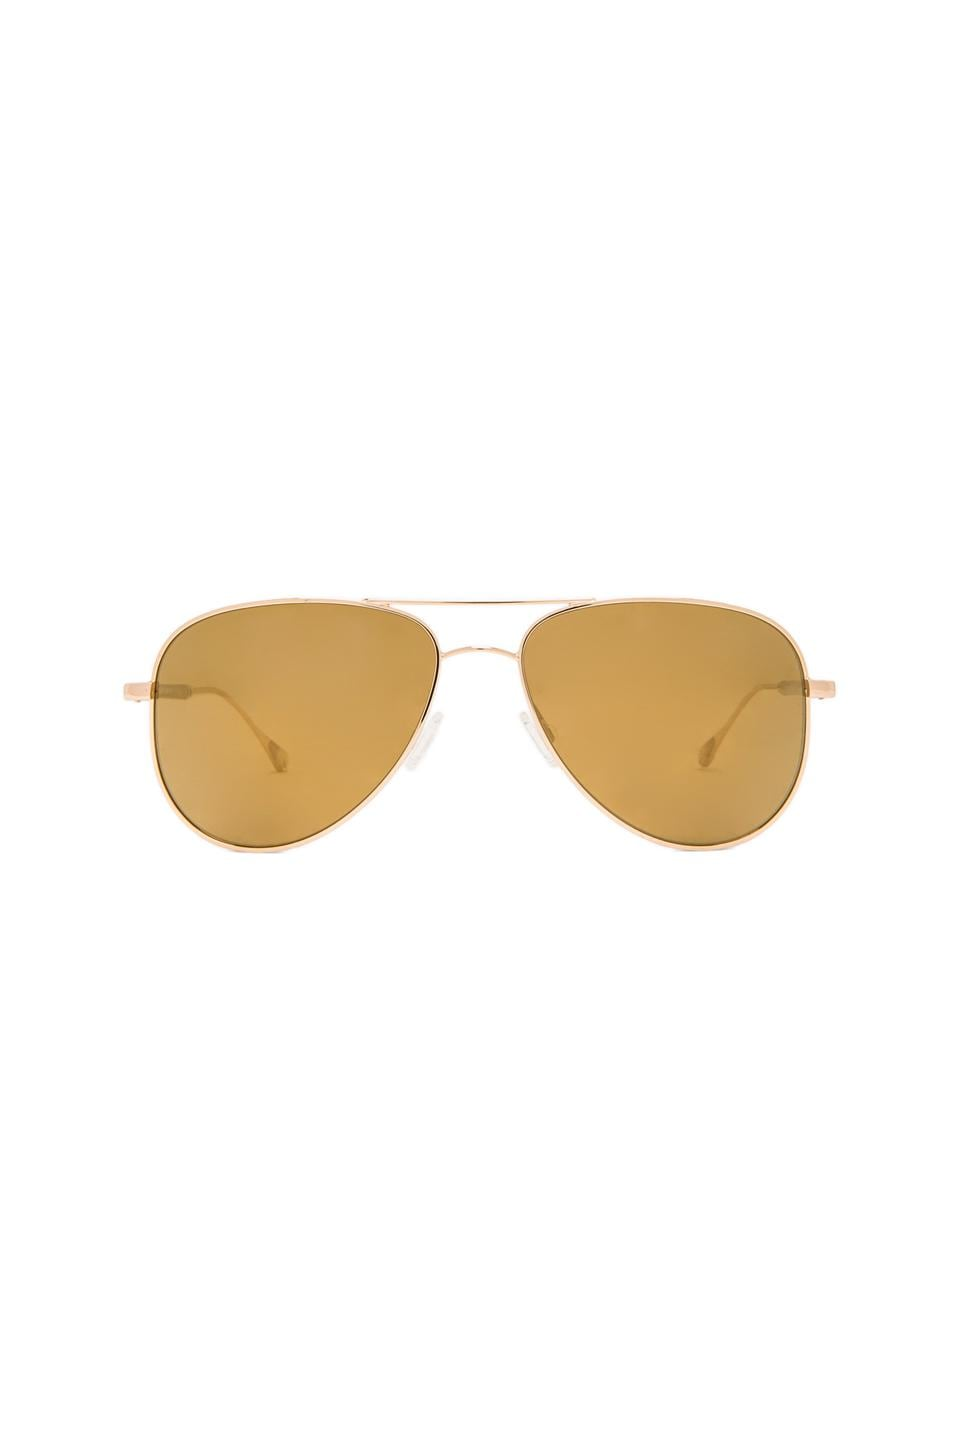 Oliver Peoples WEST Piedra Polarized Sunglasses in Gold & California Gold Mirror